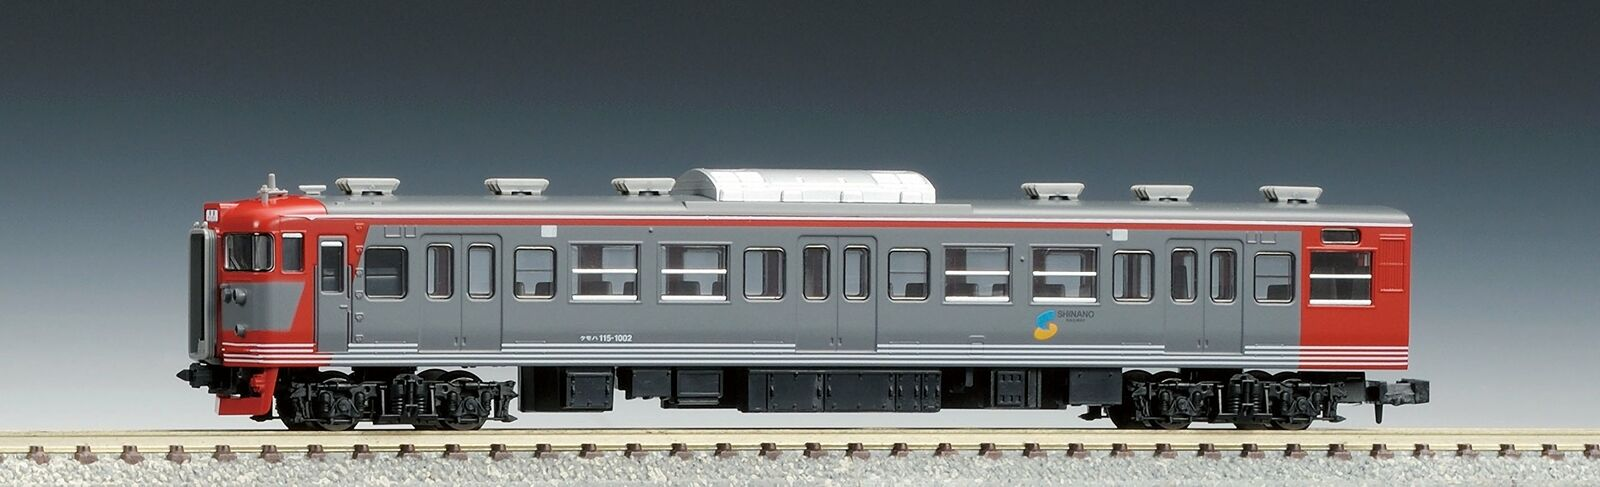 Shinano Railway Electric Train Series 115 (3-Coche Set) (Model Train)